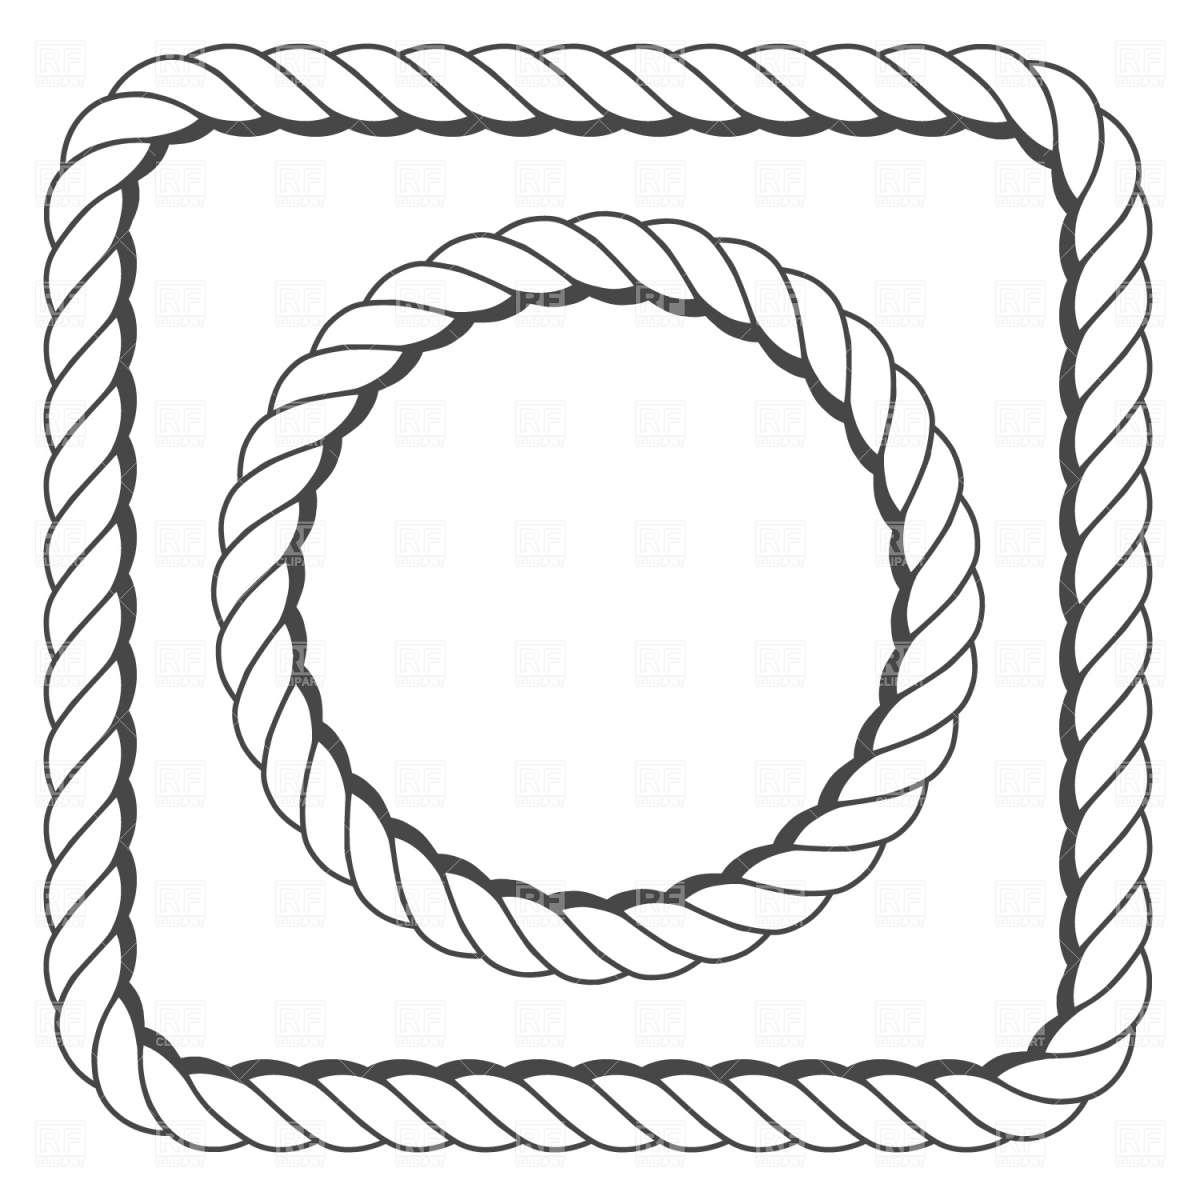 1200x1200 Rope Frame Vector Image Vector Artwork Of Borders And Frames